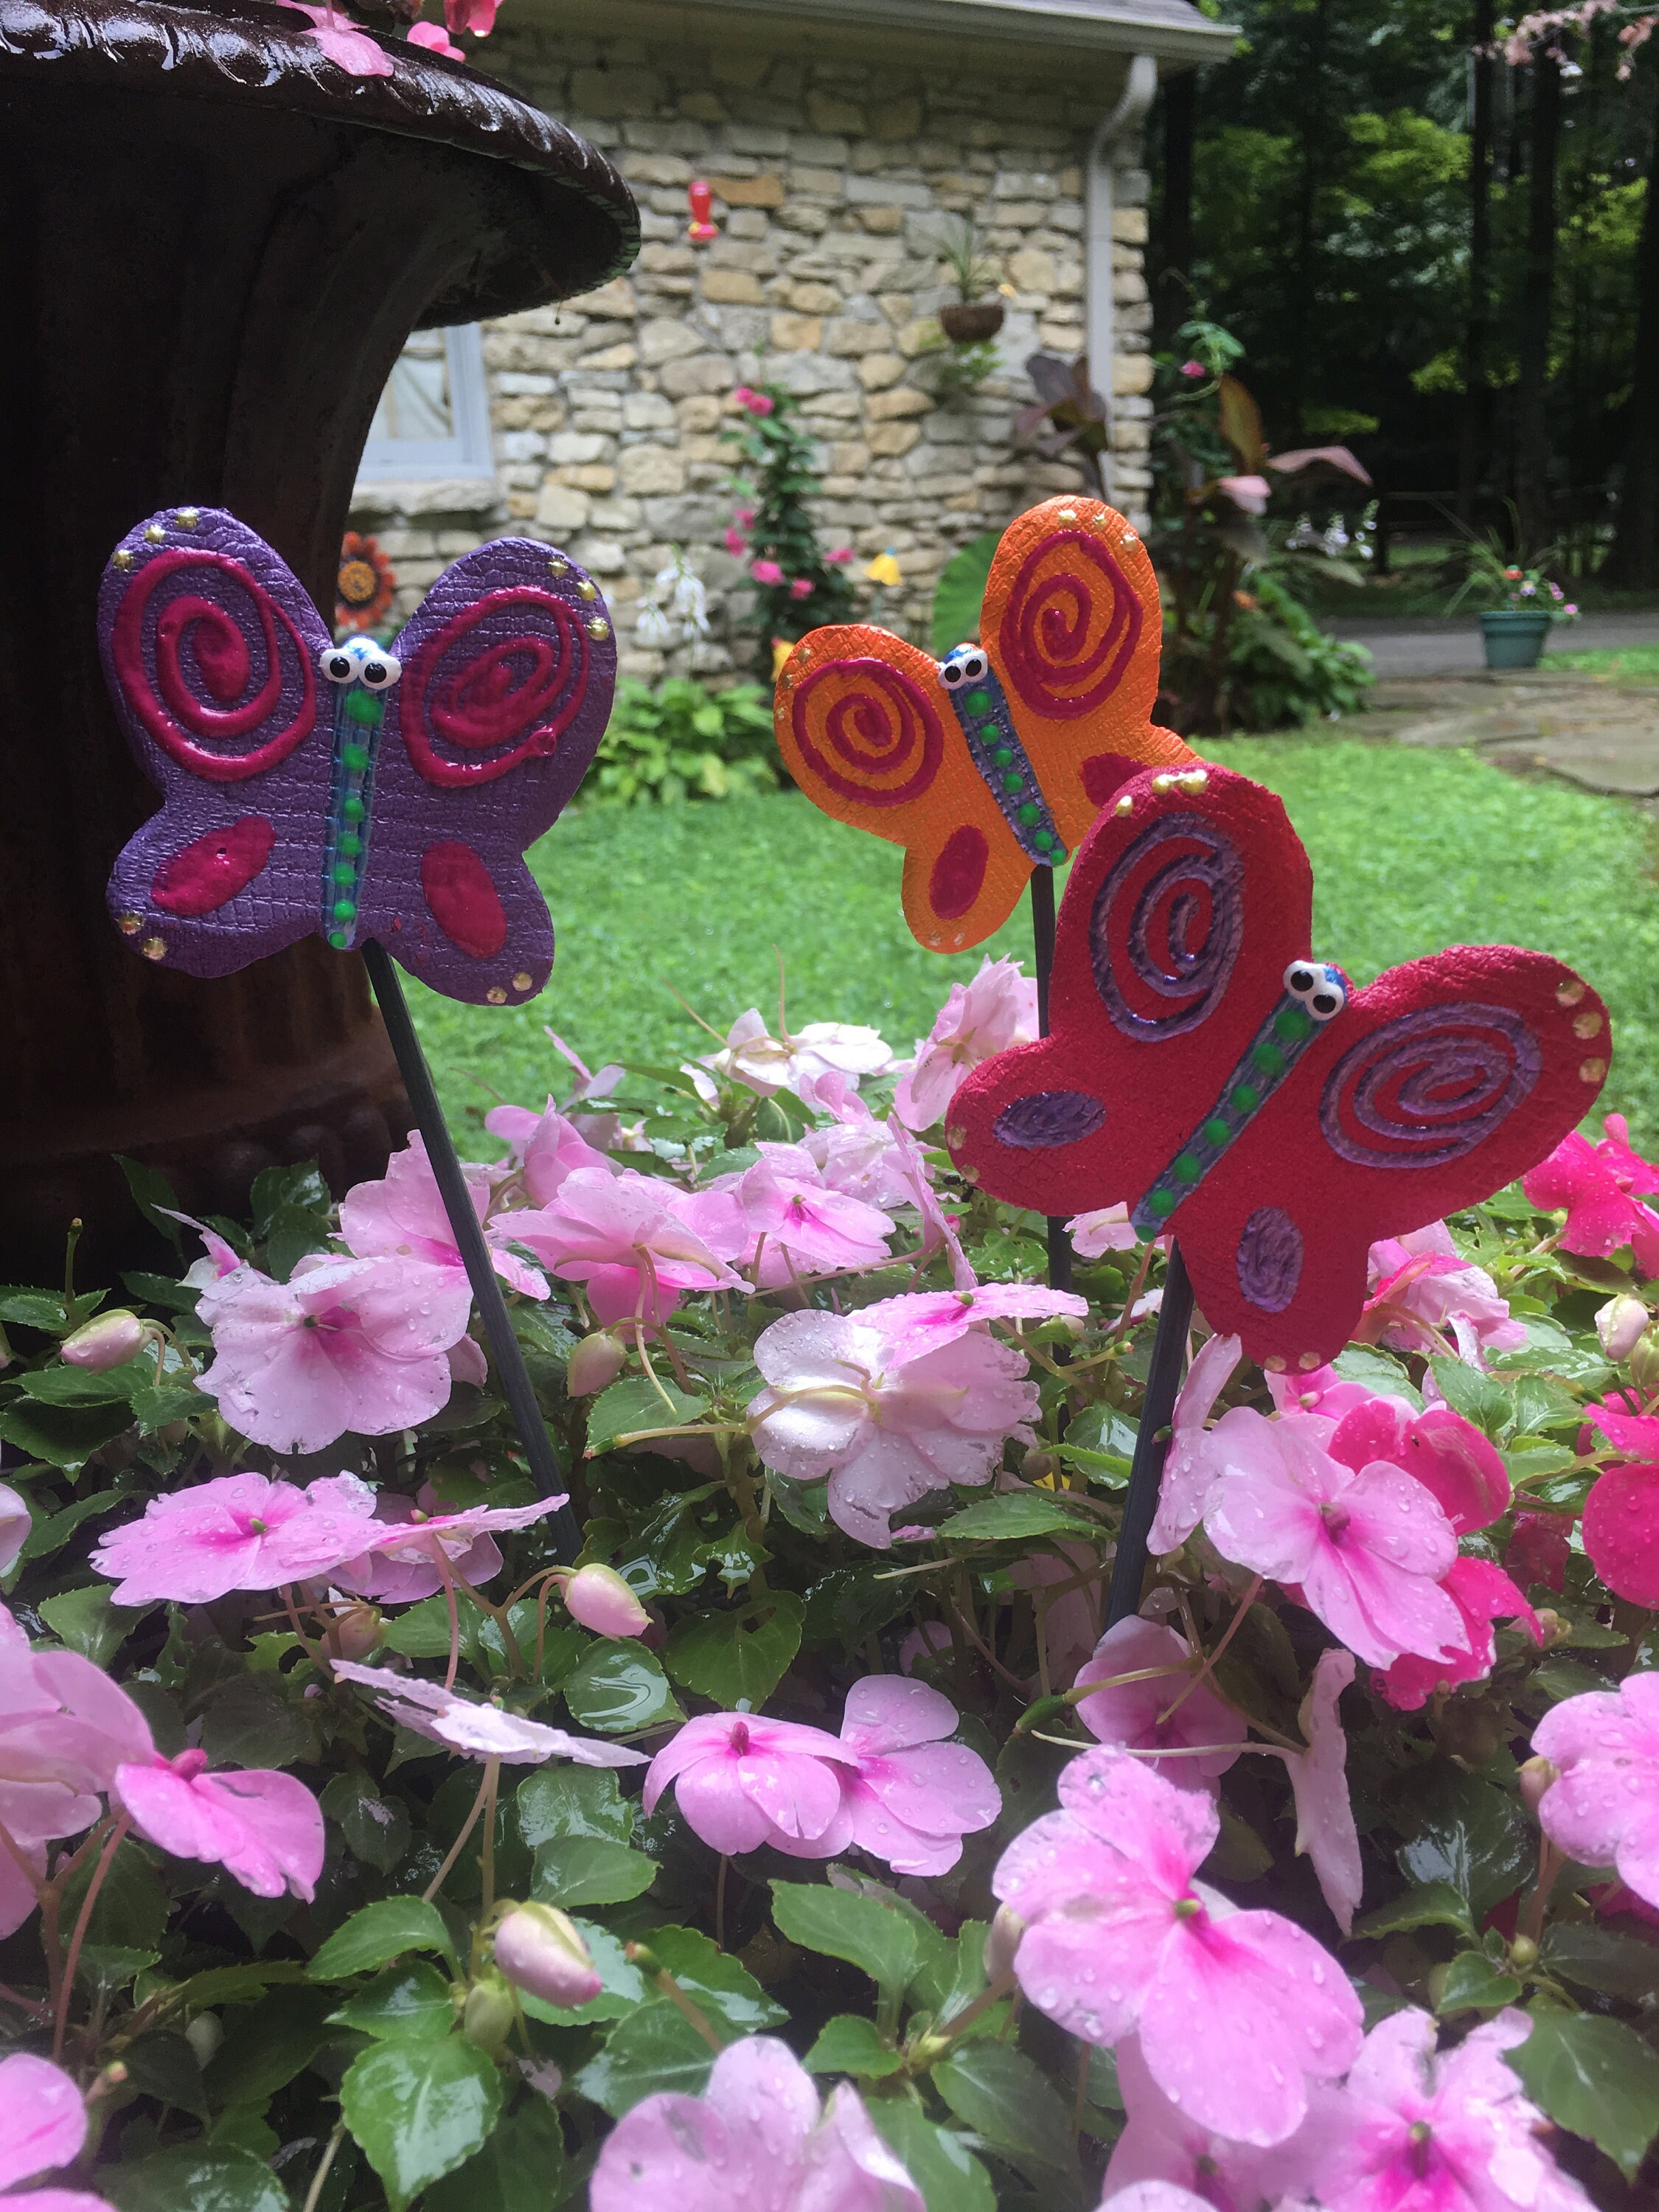 3 Ceramic Butterfly Garden Stakes, Garden Stakes,Potted Plants, Great  Gift,Lawn Decor,Outdoor Garden Stake,Garden Decor,